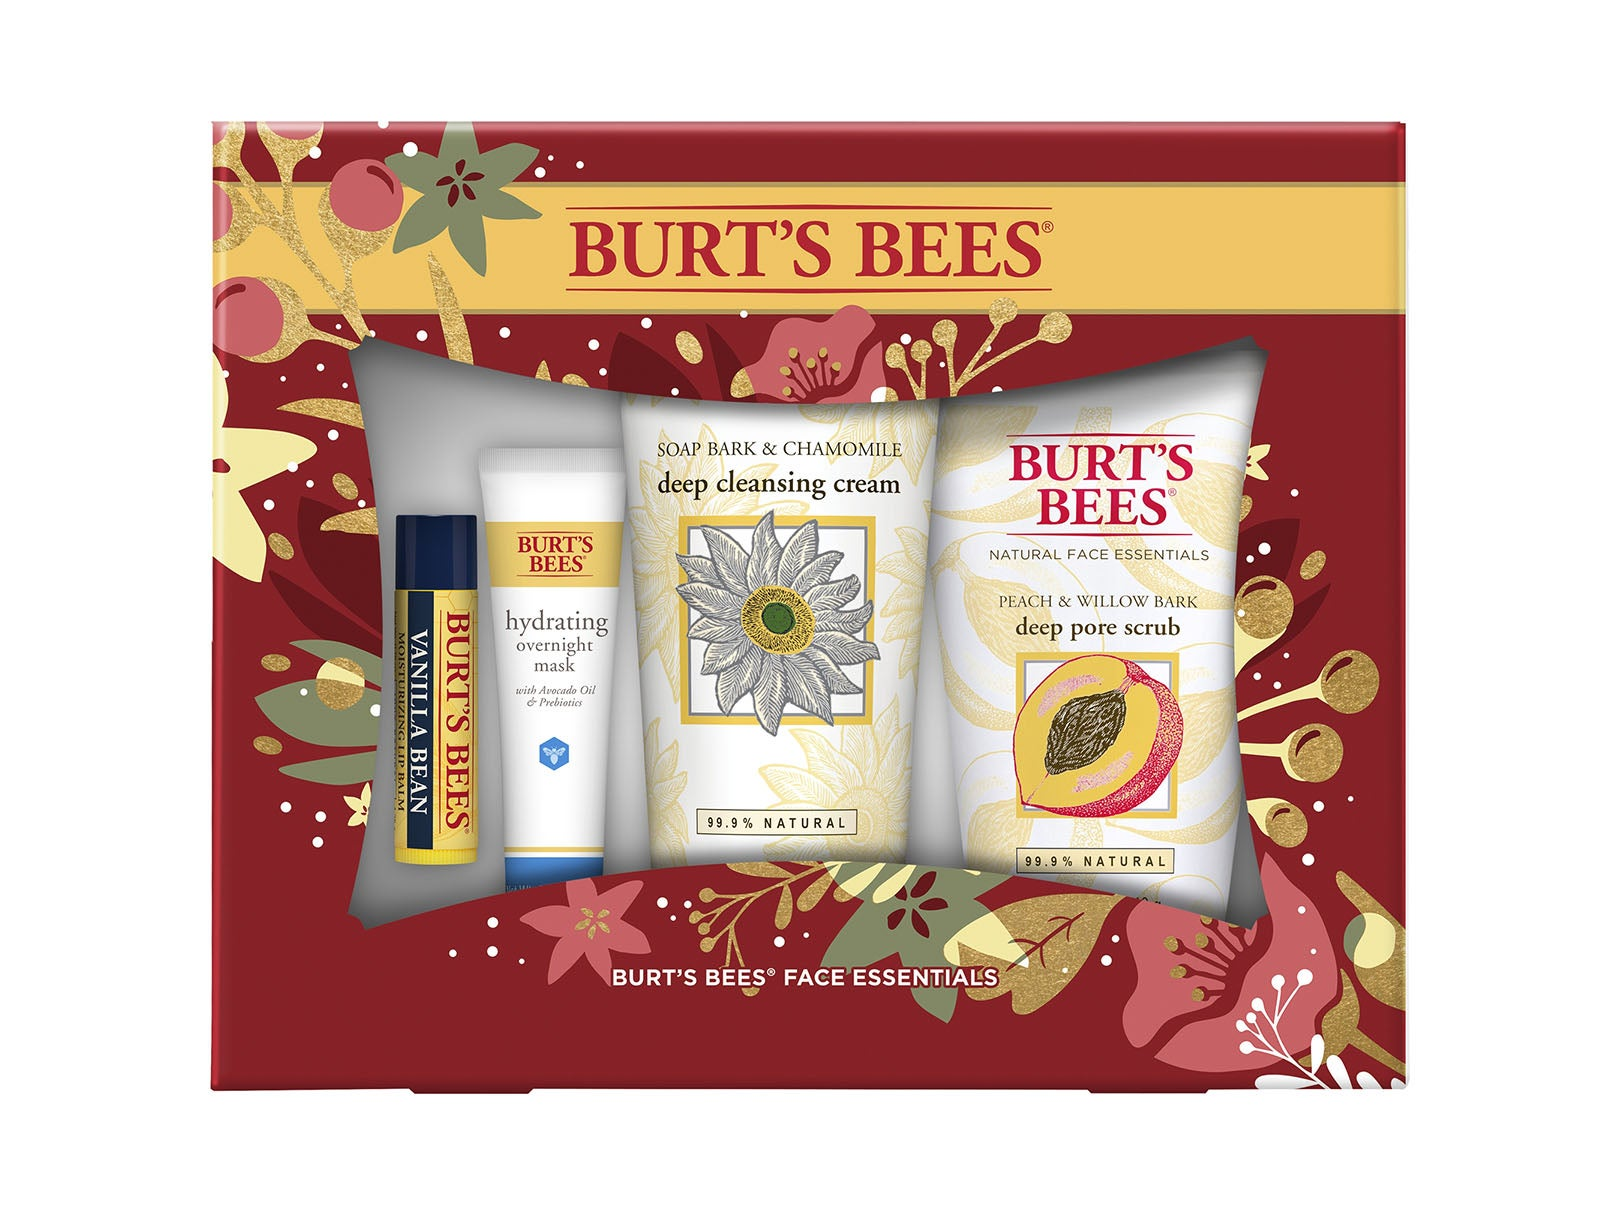 Burt's Bees Face Essentials Gift